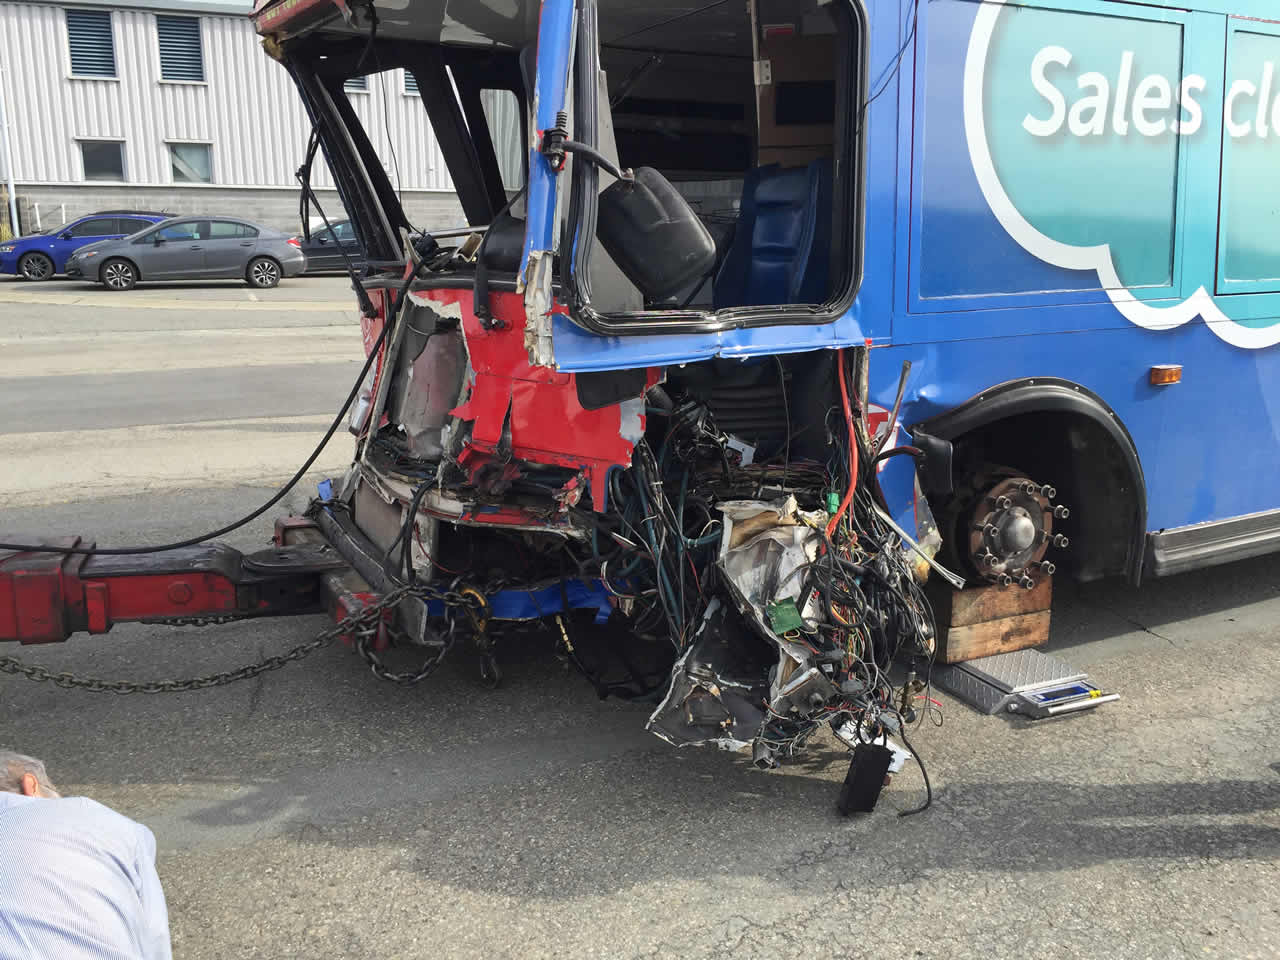 "<div class=""meta image-caption""><div class=""origin-logo origin-image none""><span>none</span></div><span class=""caption-text"">This photo taken Tuesday, January 12, 2016, shows the damage a tour bus sustained after a crash in San Francisco's Union Square on Friday, November 13, 2015. (Photo courtesy of the San Francisco Police Department.)</span></div>"